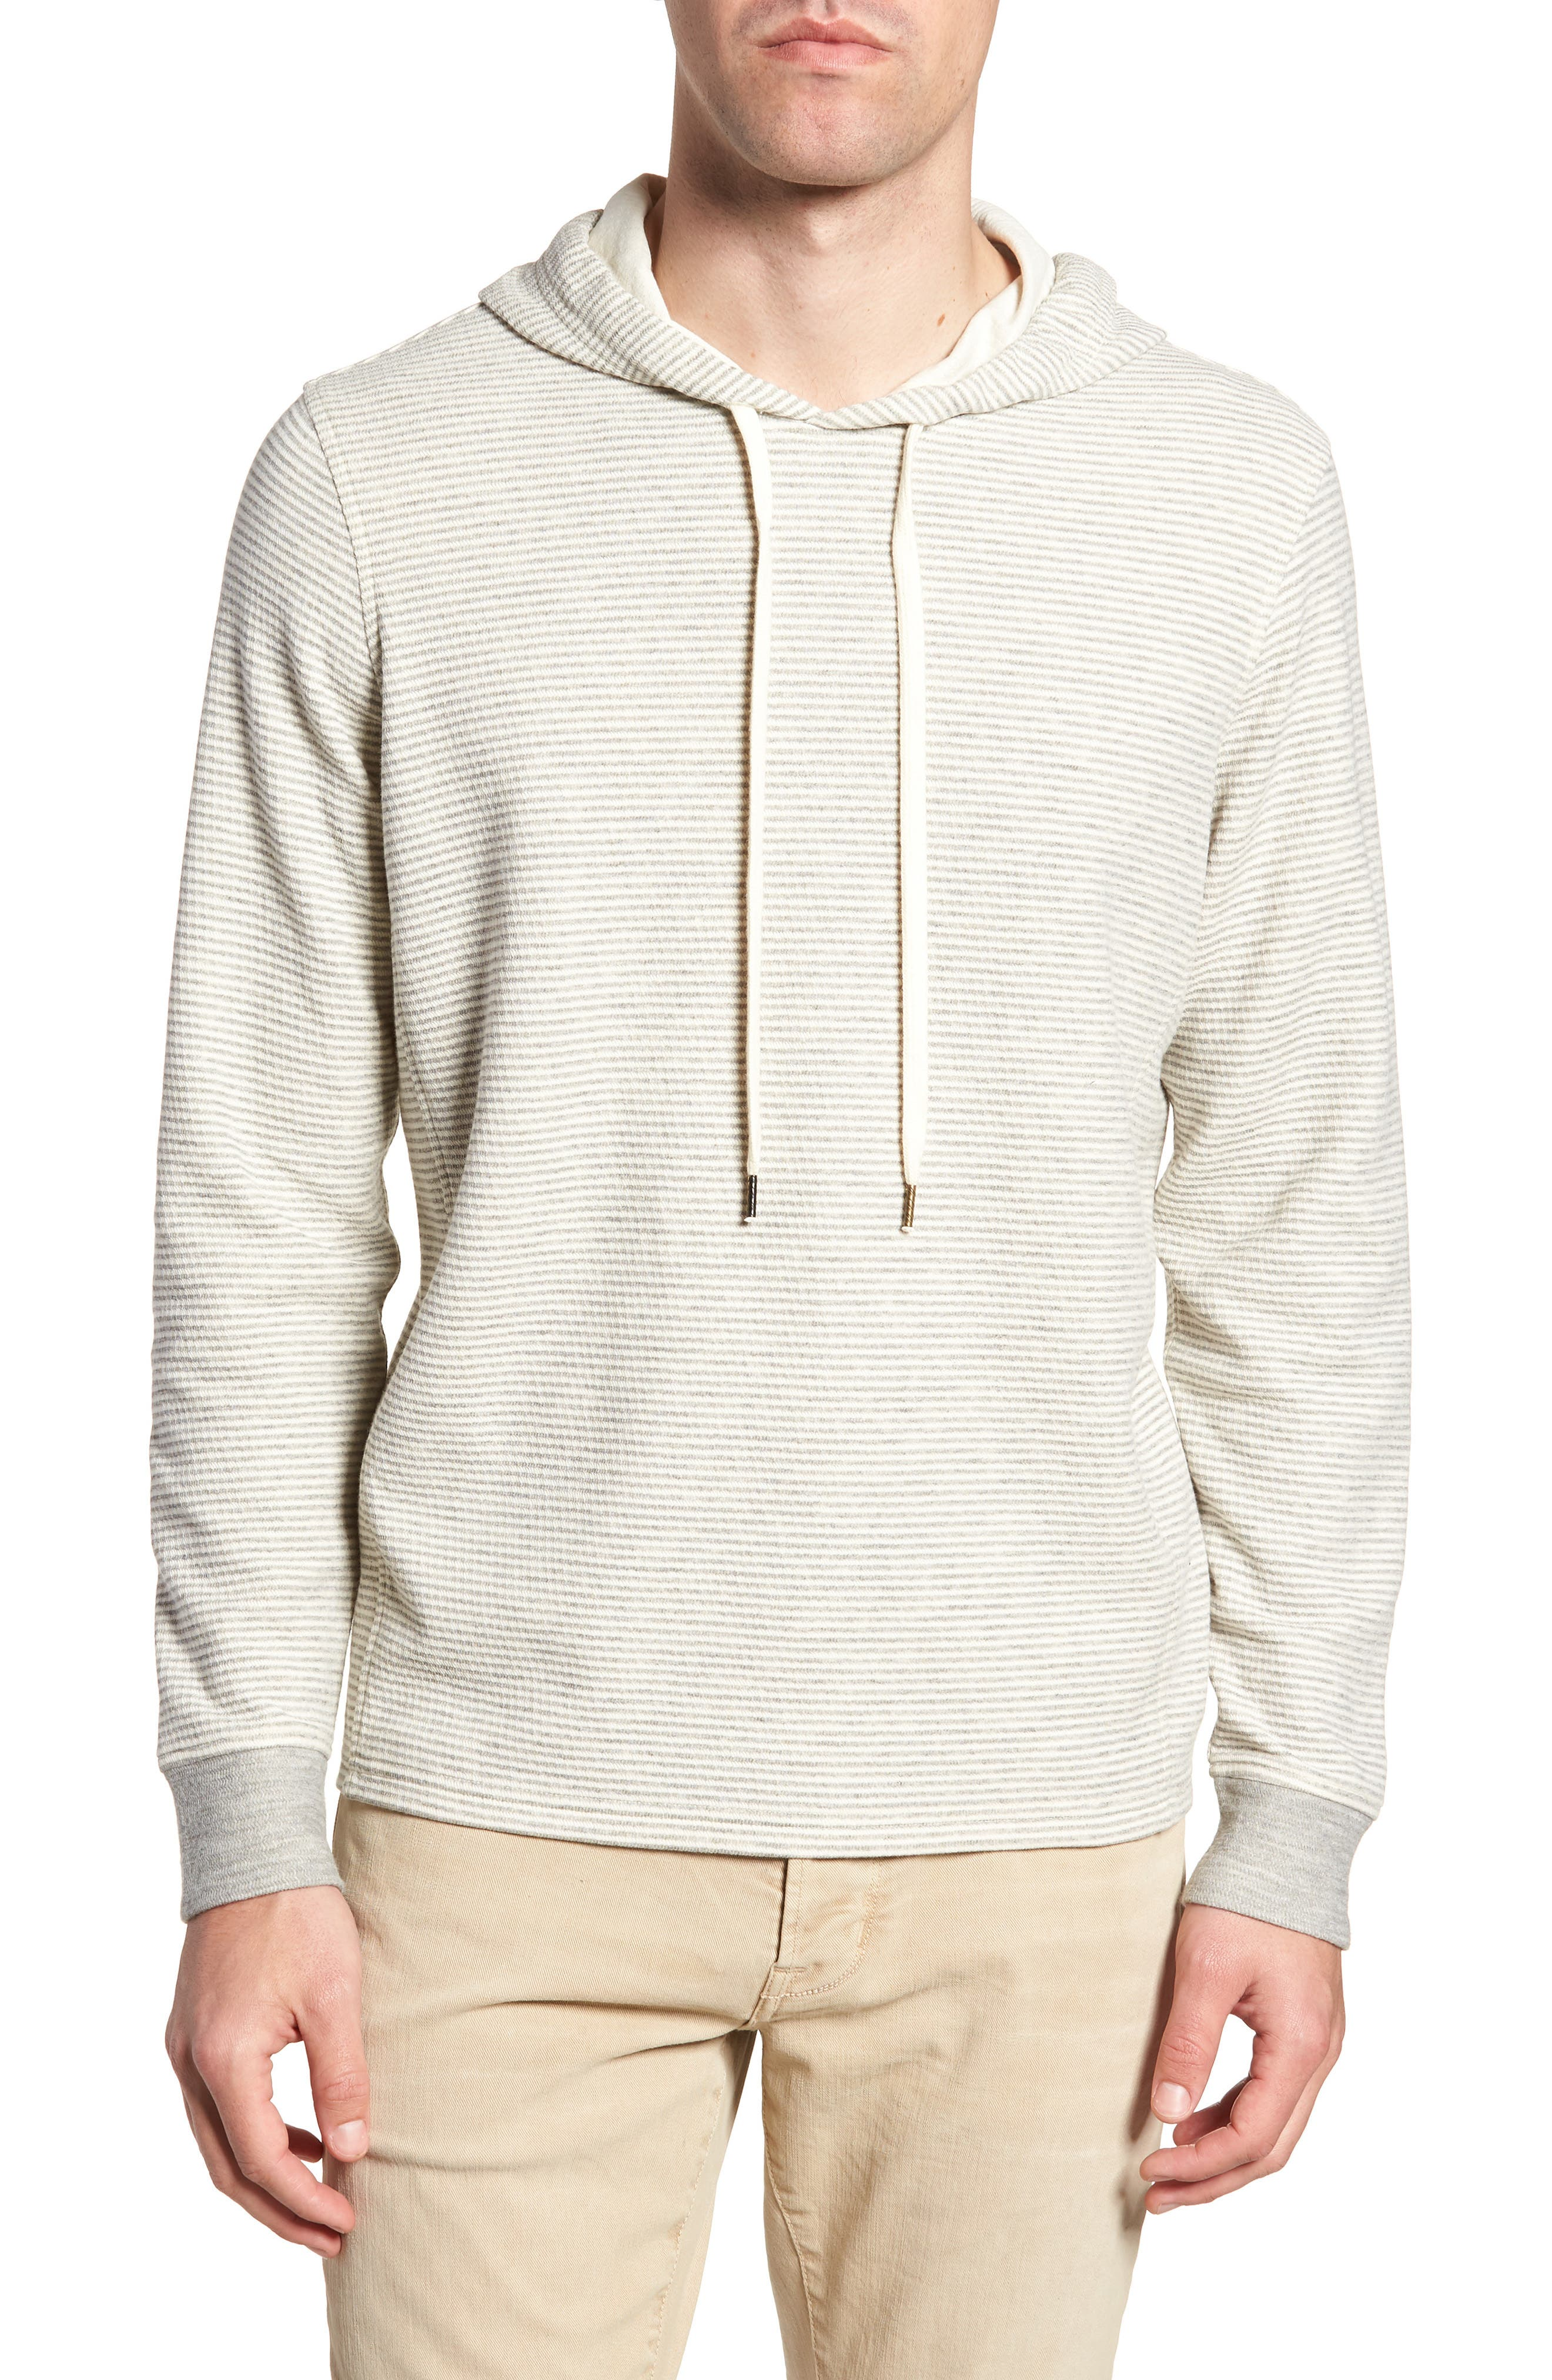 Cotton Blend Hoodie,                             Main thumbnail 1, color,                             GREY/ NATURAL